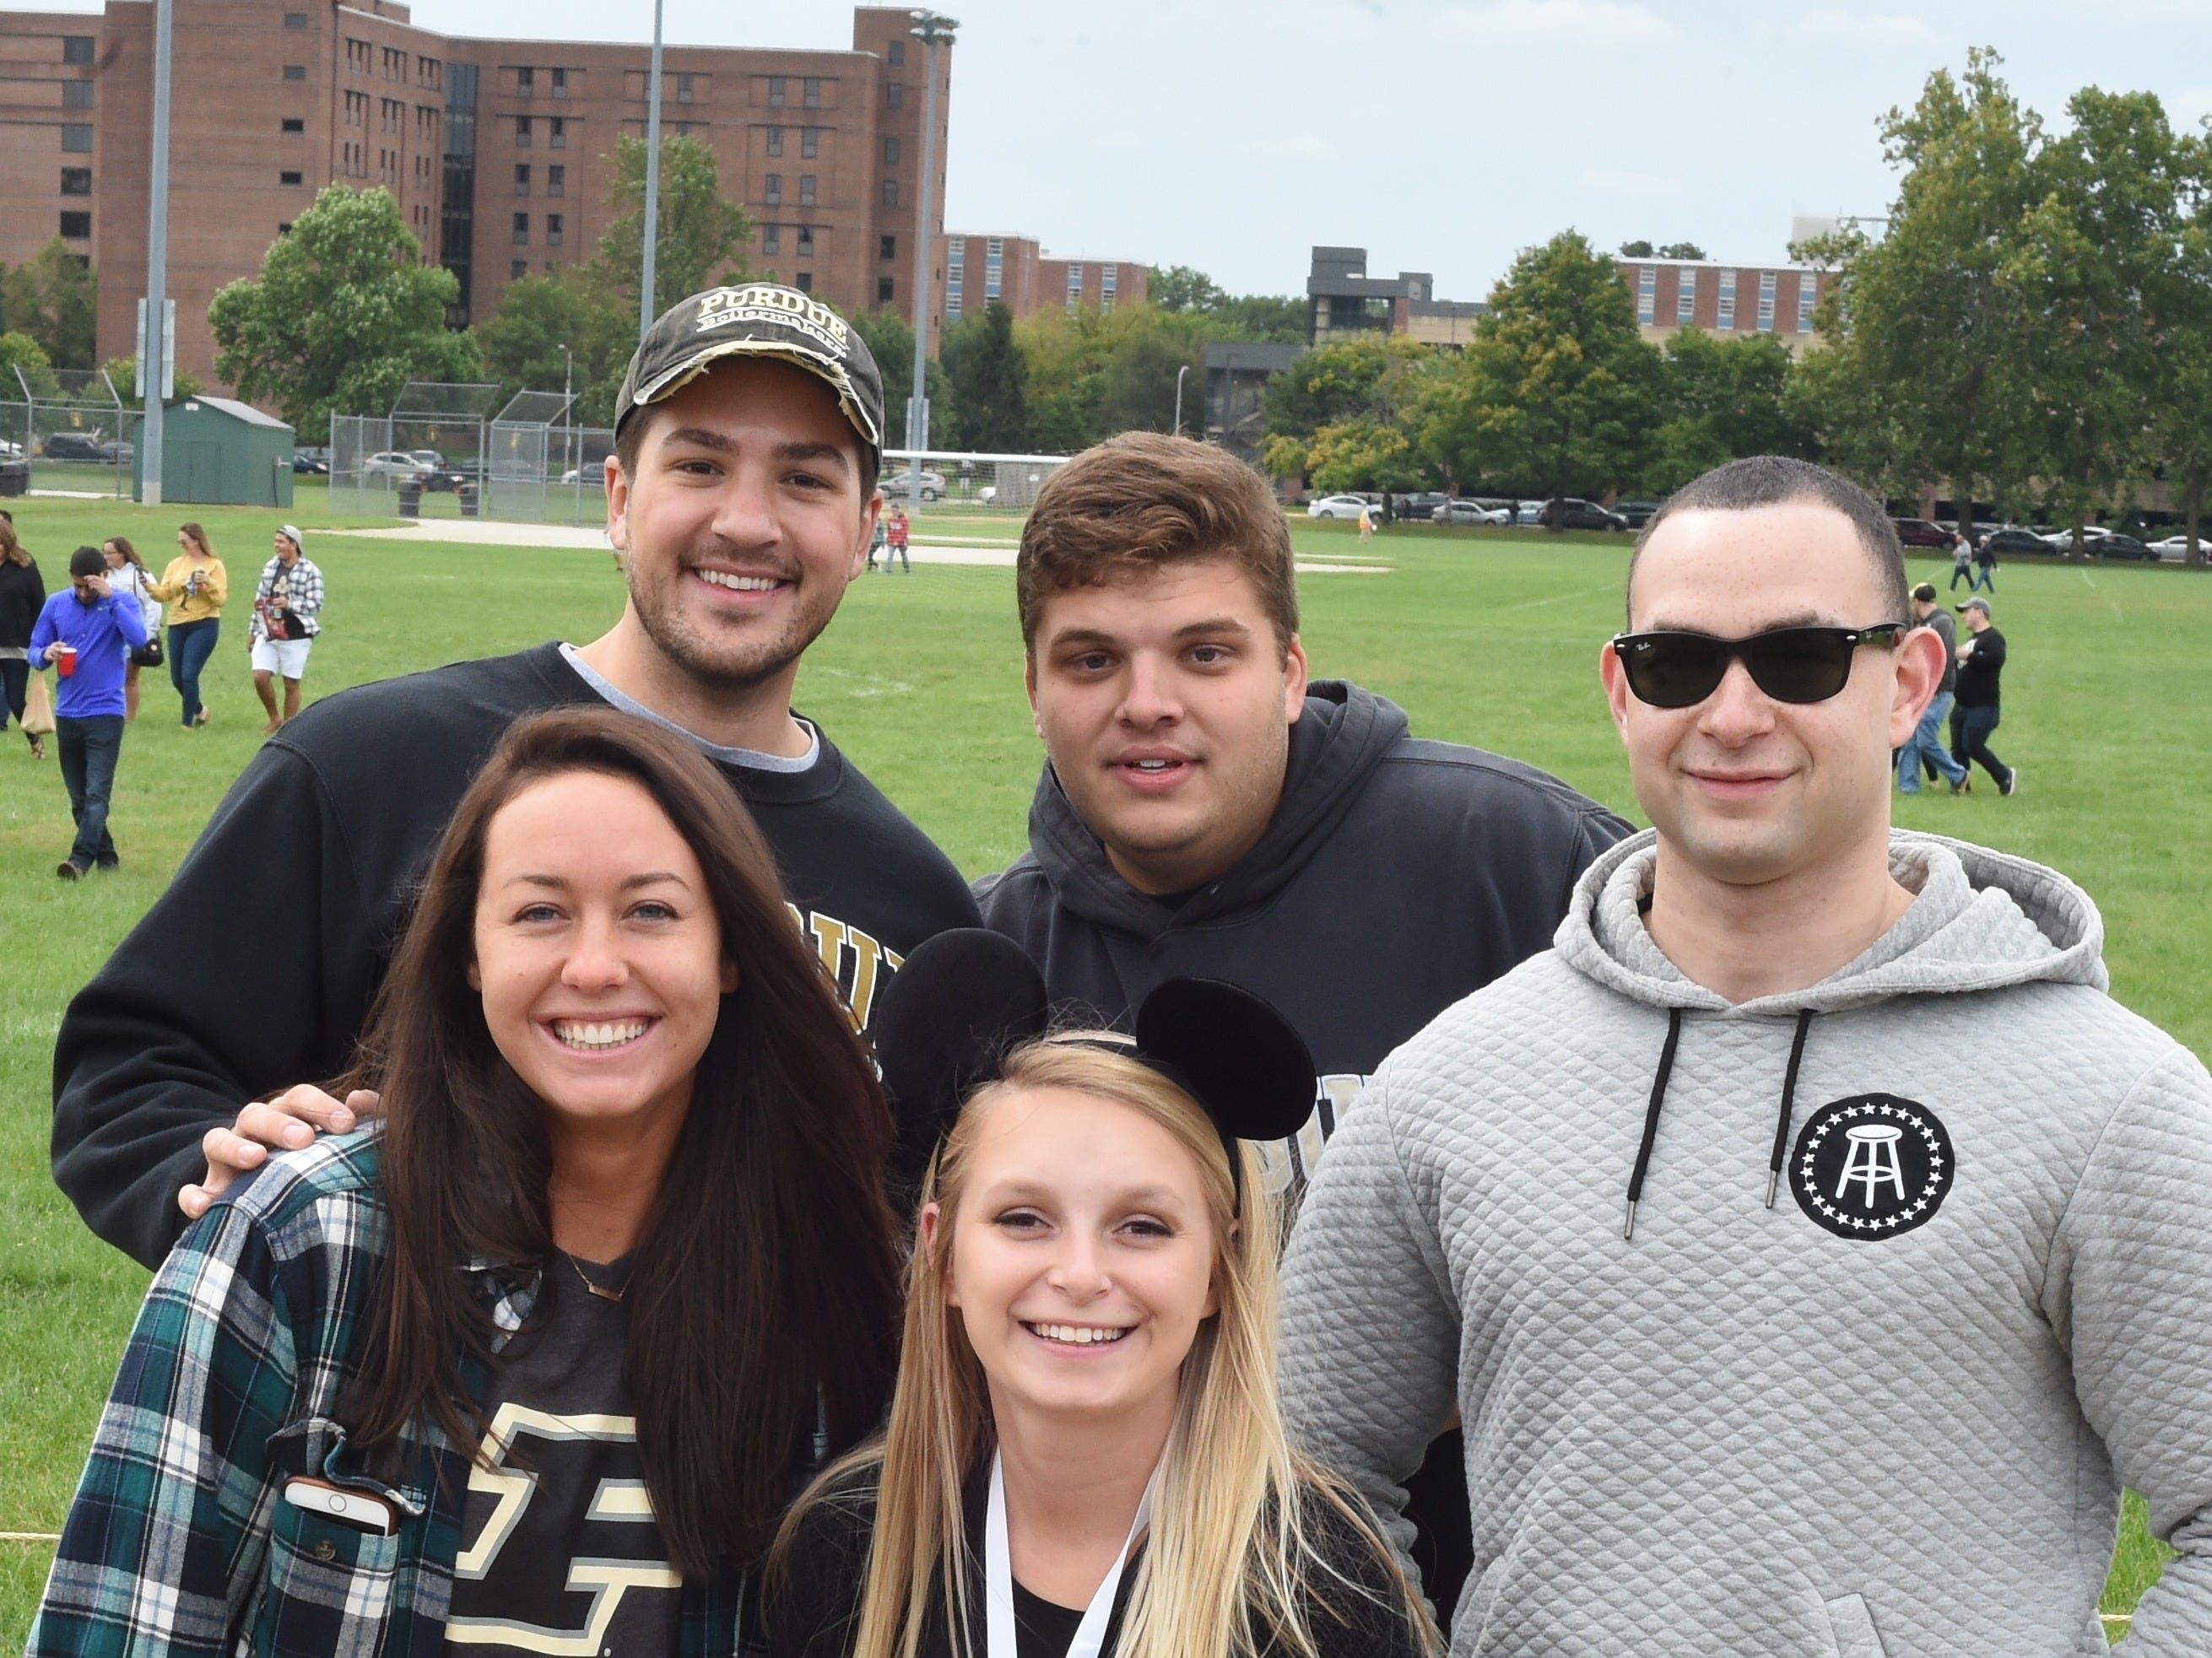 The Boiler faithful have something to cheer about against Boston College Saturday.